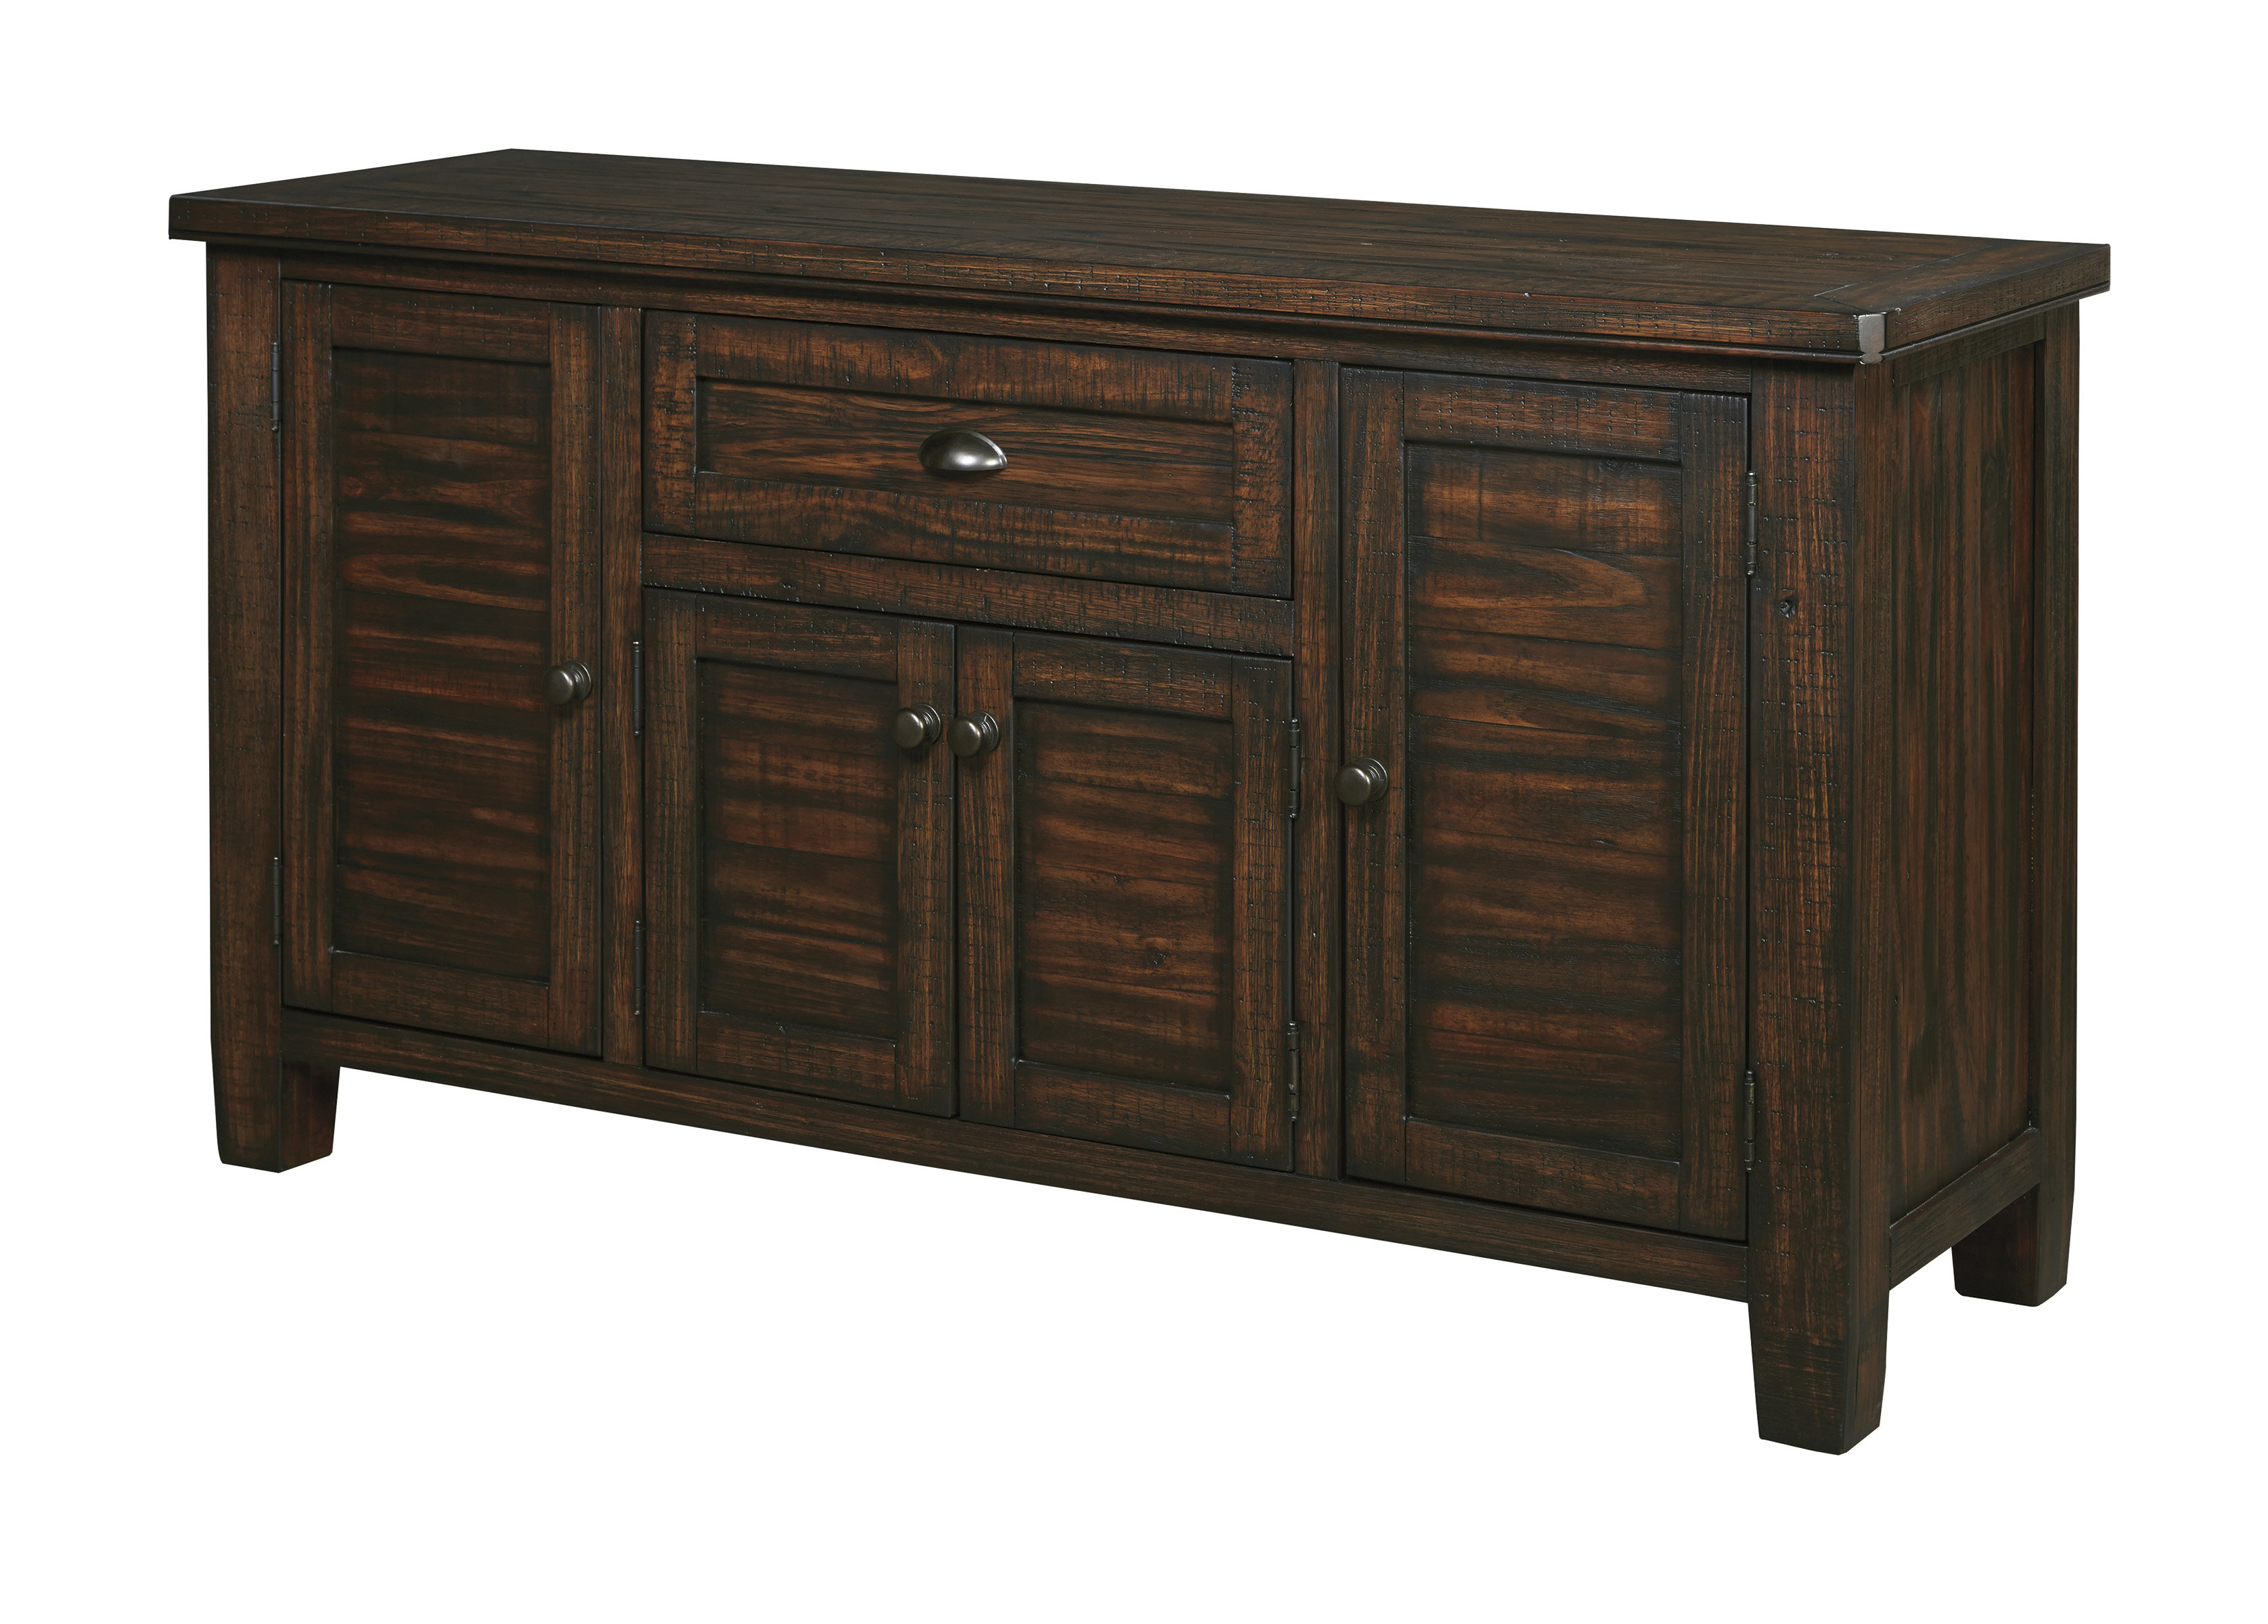 Chaffins Sideboard With Seiling Sideboards (View 2 of 20)